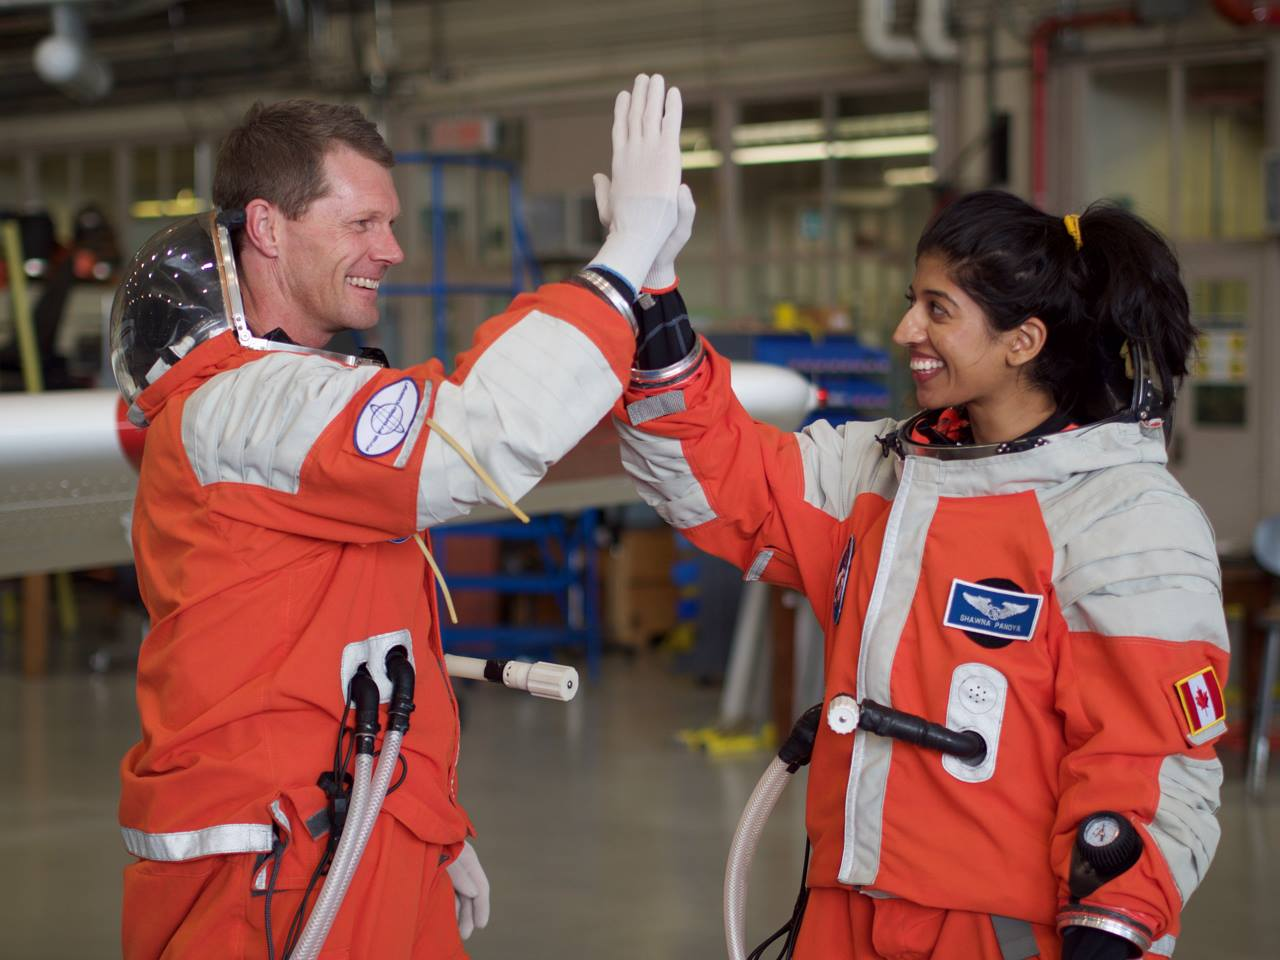 Shawna Pandya (right) gives crewmate Callum Wallach a high-five.